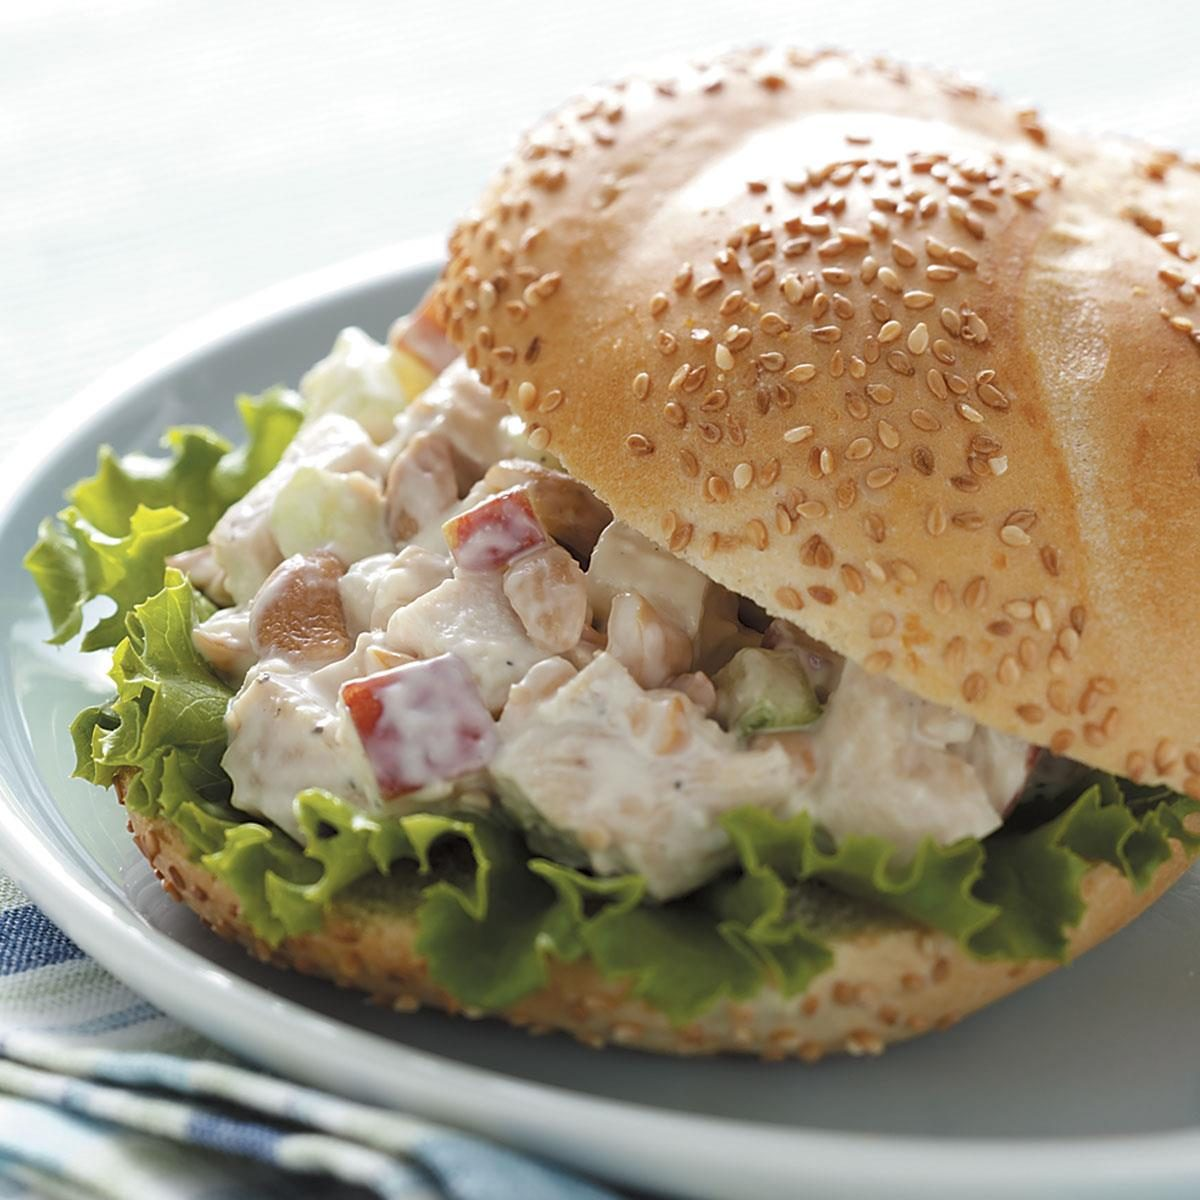 Cashew Chicken Salad Sandwiches Recipe | Taste of Home